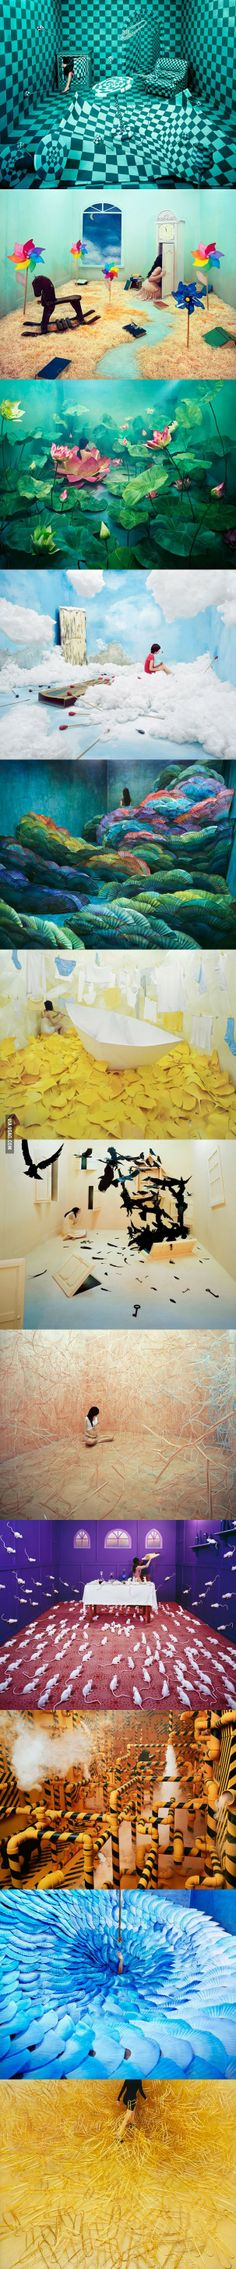 JeeYoung Lee, a Korean artist, creates amazing scenes without using any digital manipulation.